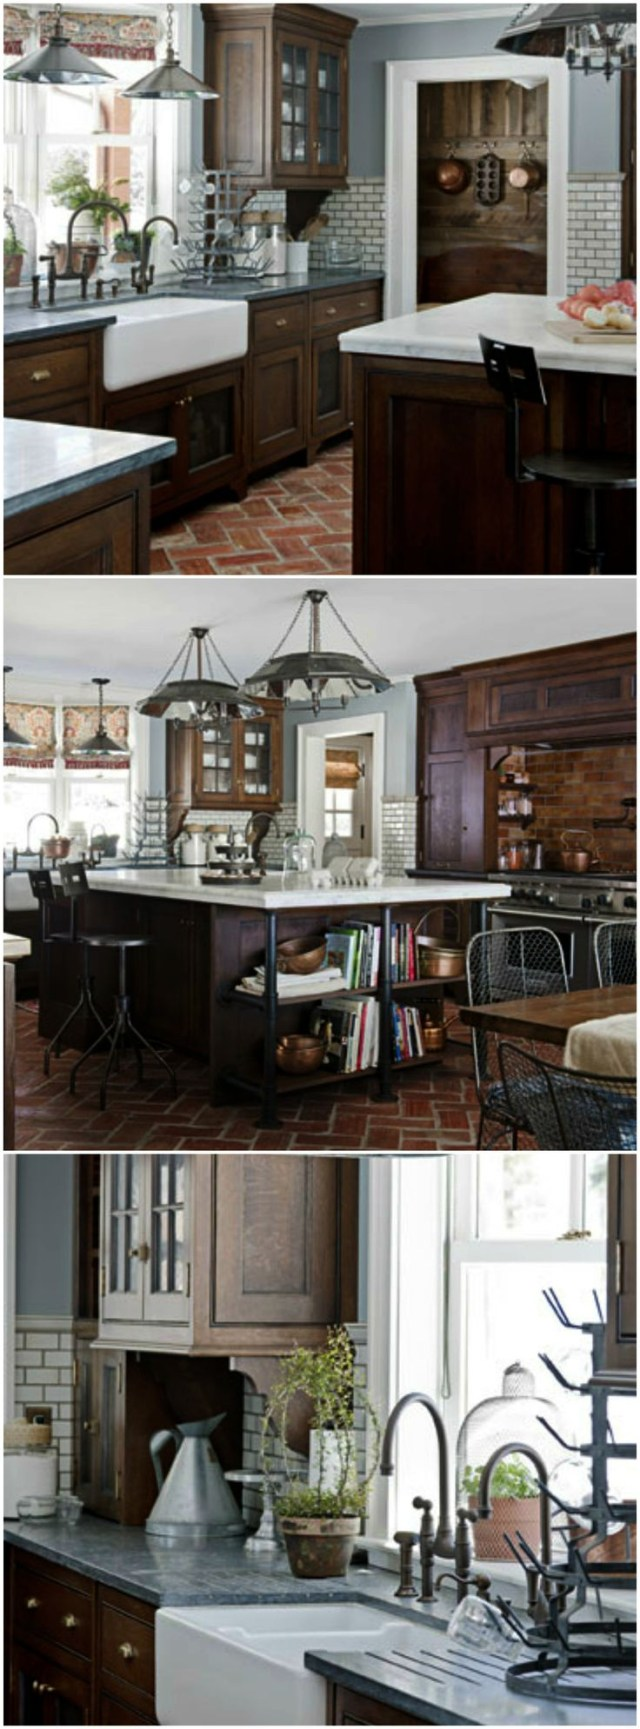 29 Best French Country Tablescape Images On Pinterest Dinner Parties Cottages And Country French